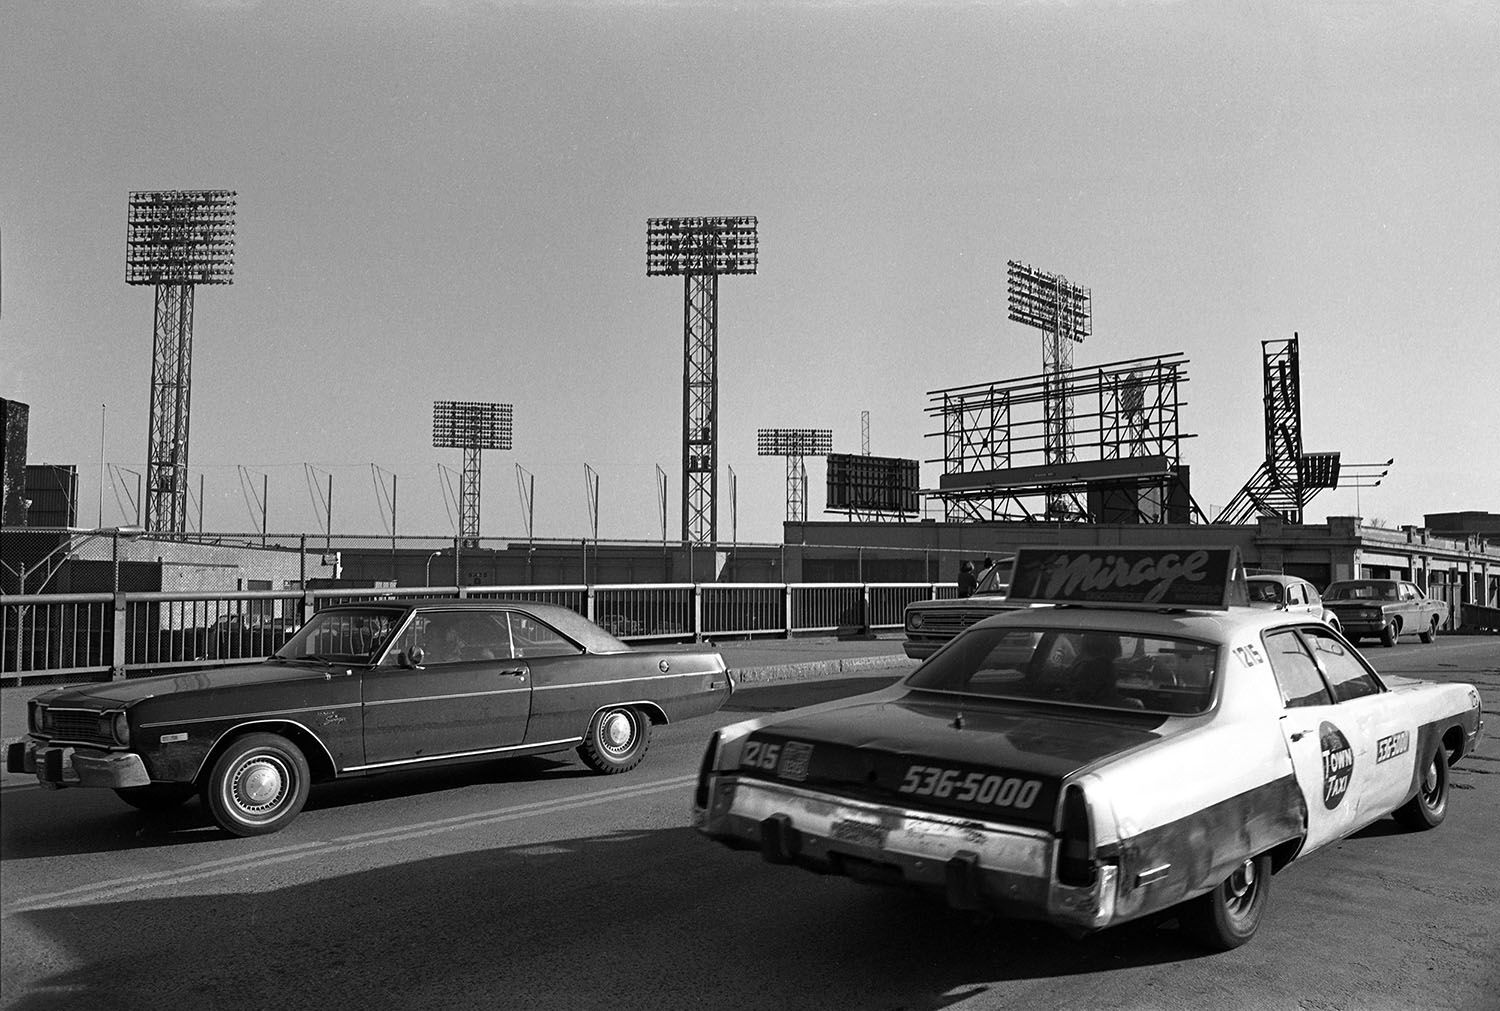 Kenmore Square and Fenway Park 1975